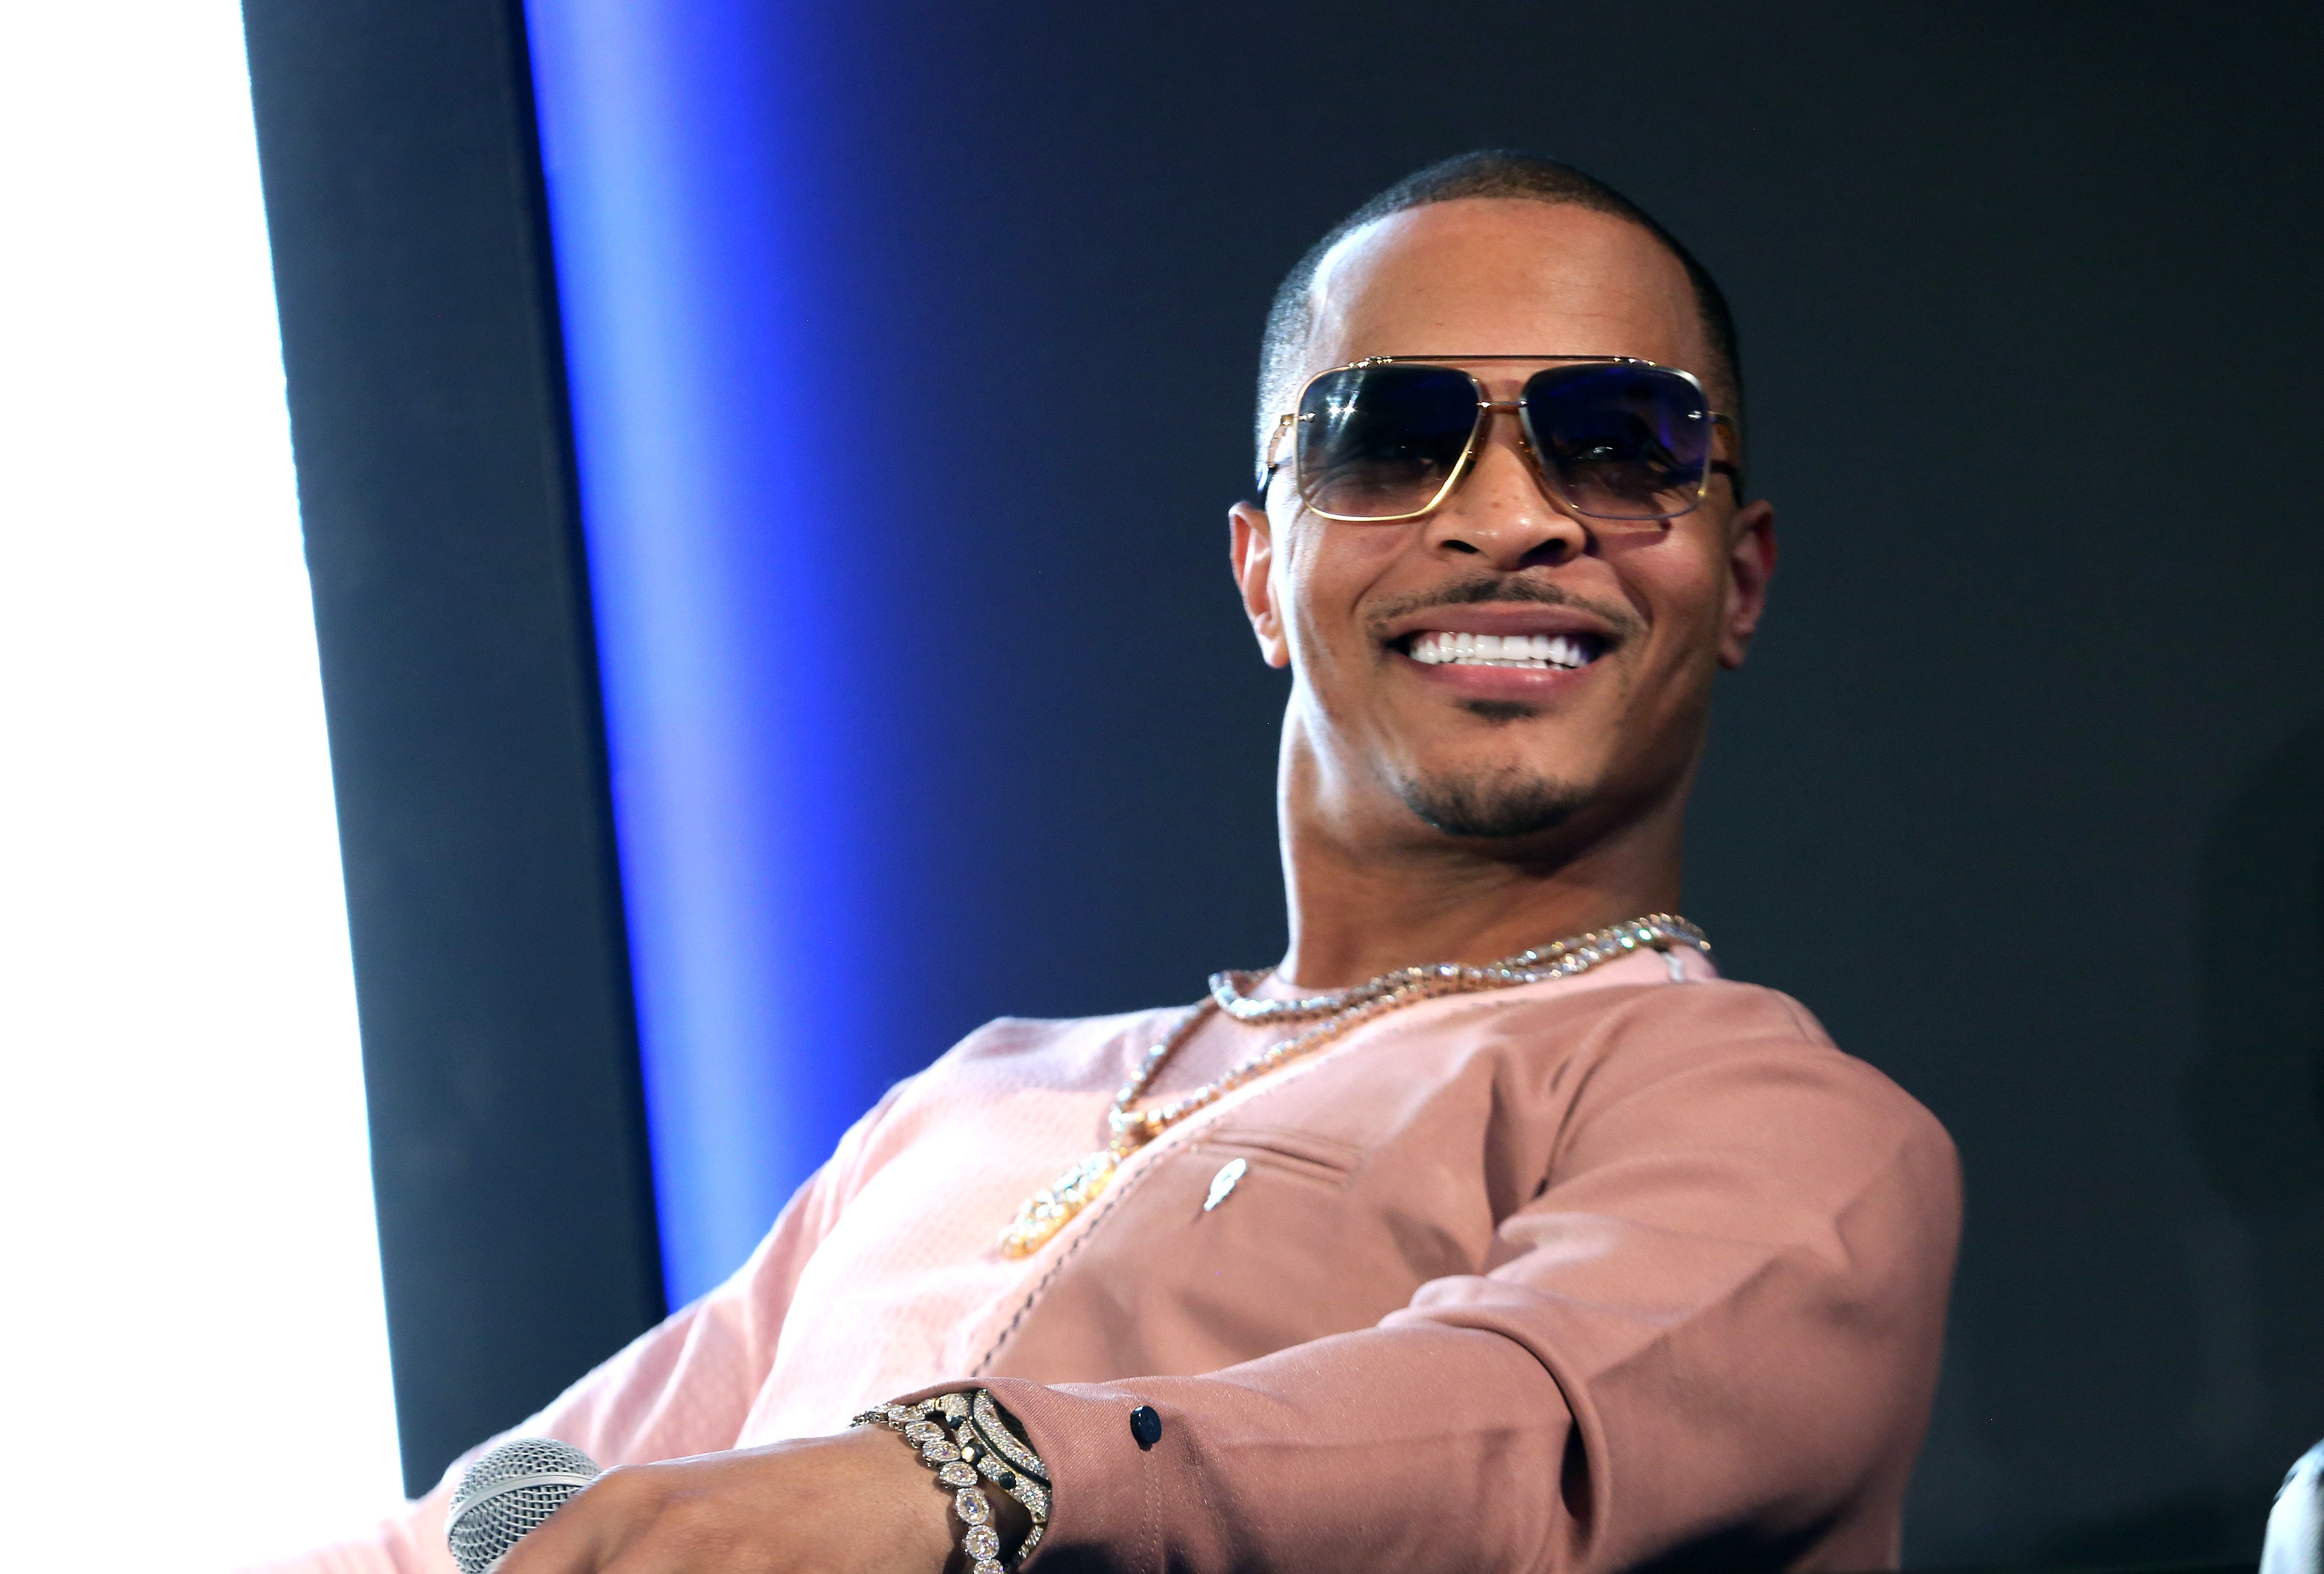 T.I. speaking at META – Convened by BET Networks on February 20, 2020 in Los Angeles, California. | Source: Getty Images